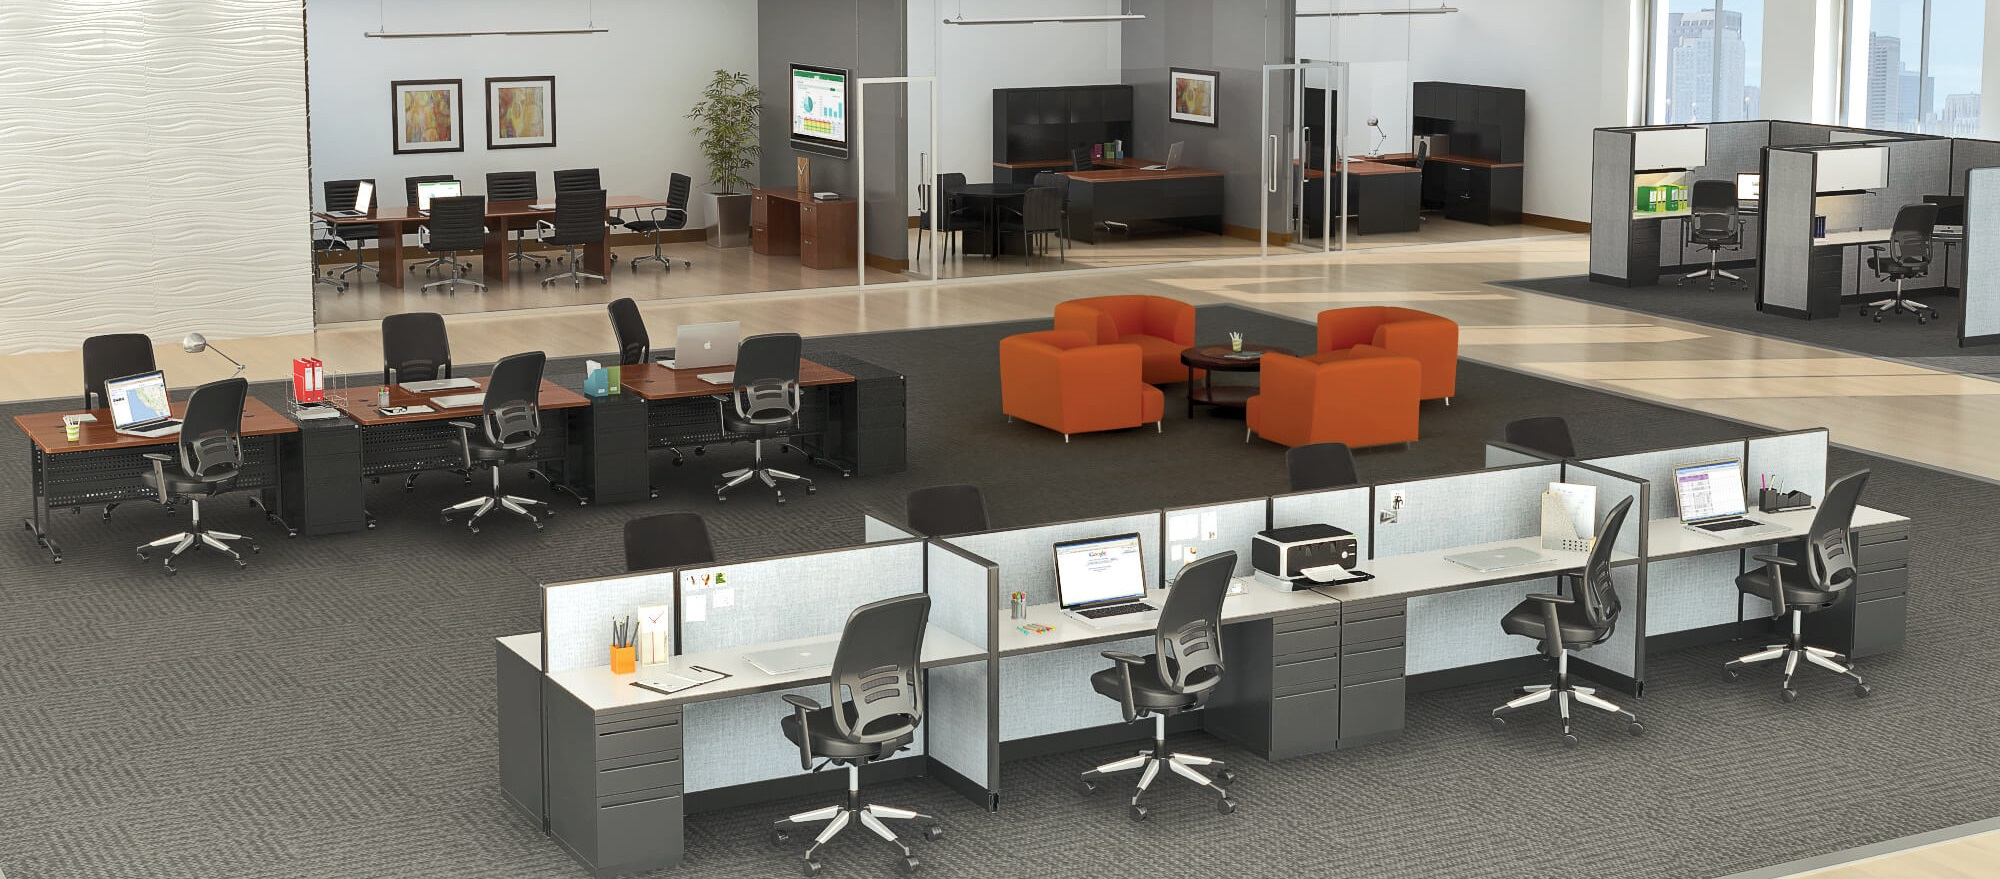 Office staging commercial staging rental brook furniture rental Furniture in rental home